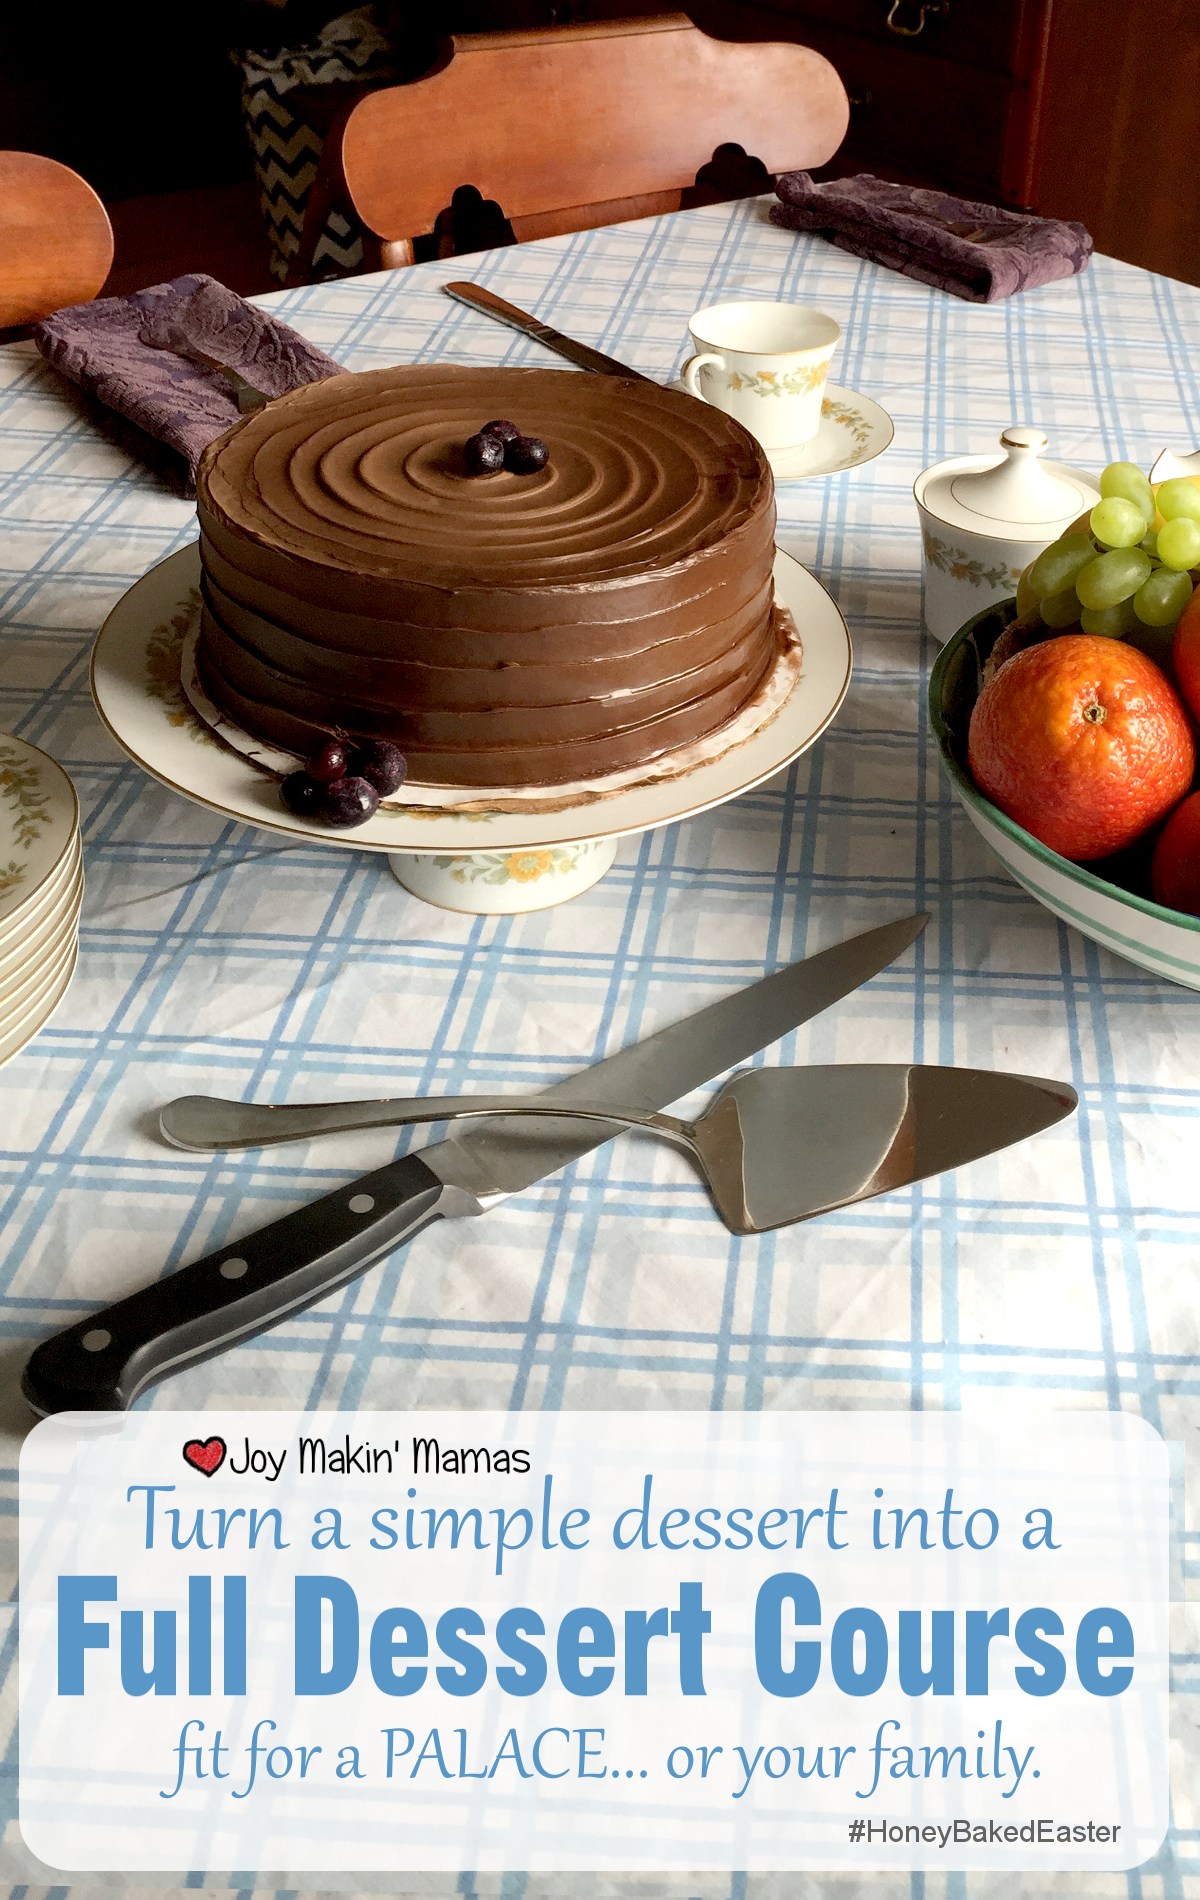 Joy Makin' Mamas HoneyBaked Easter Dessert Course #Sponsored